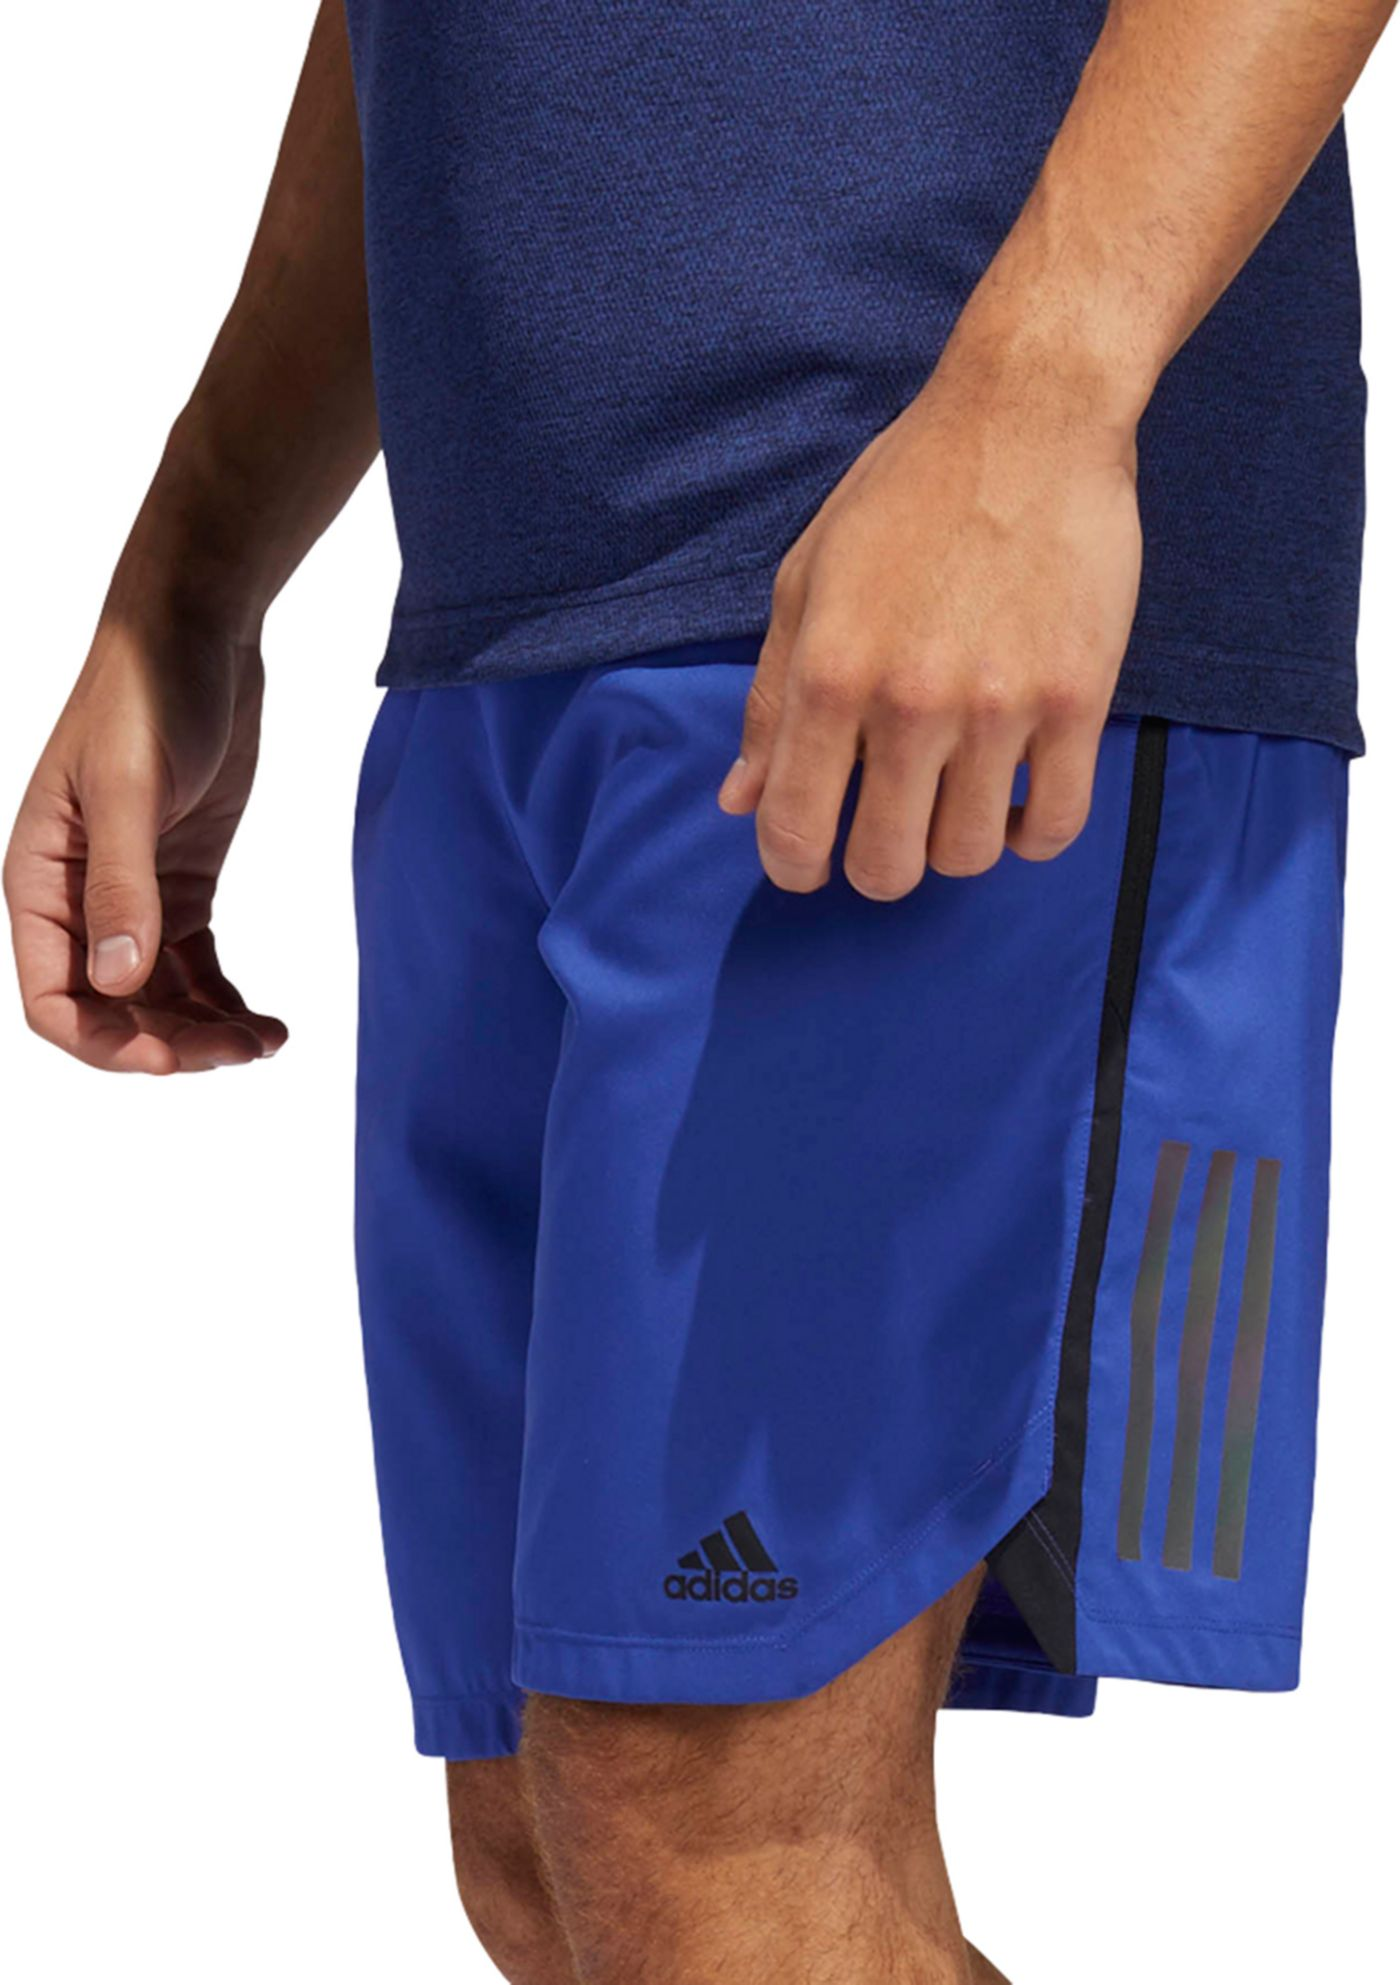 adidas Men's Axis Woven Elevated 3-Stripes Shorts